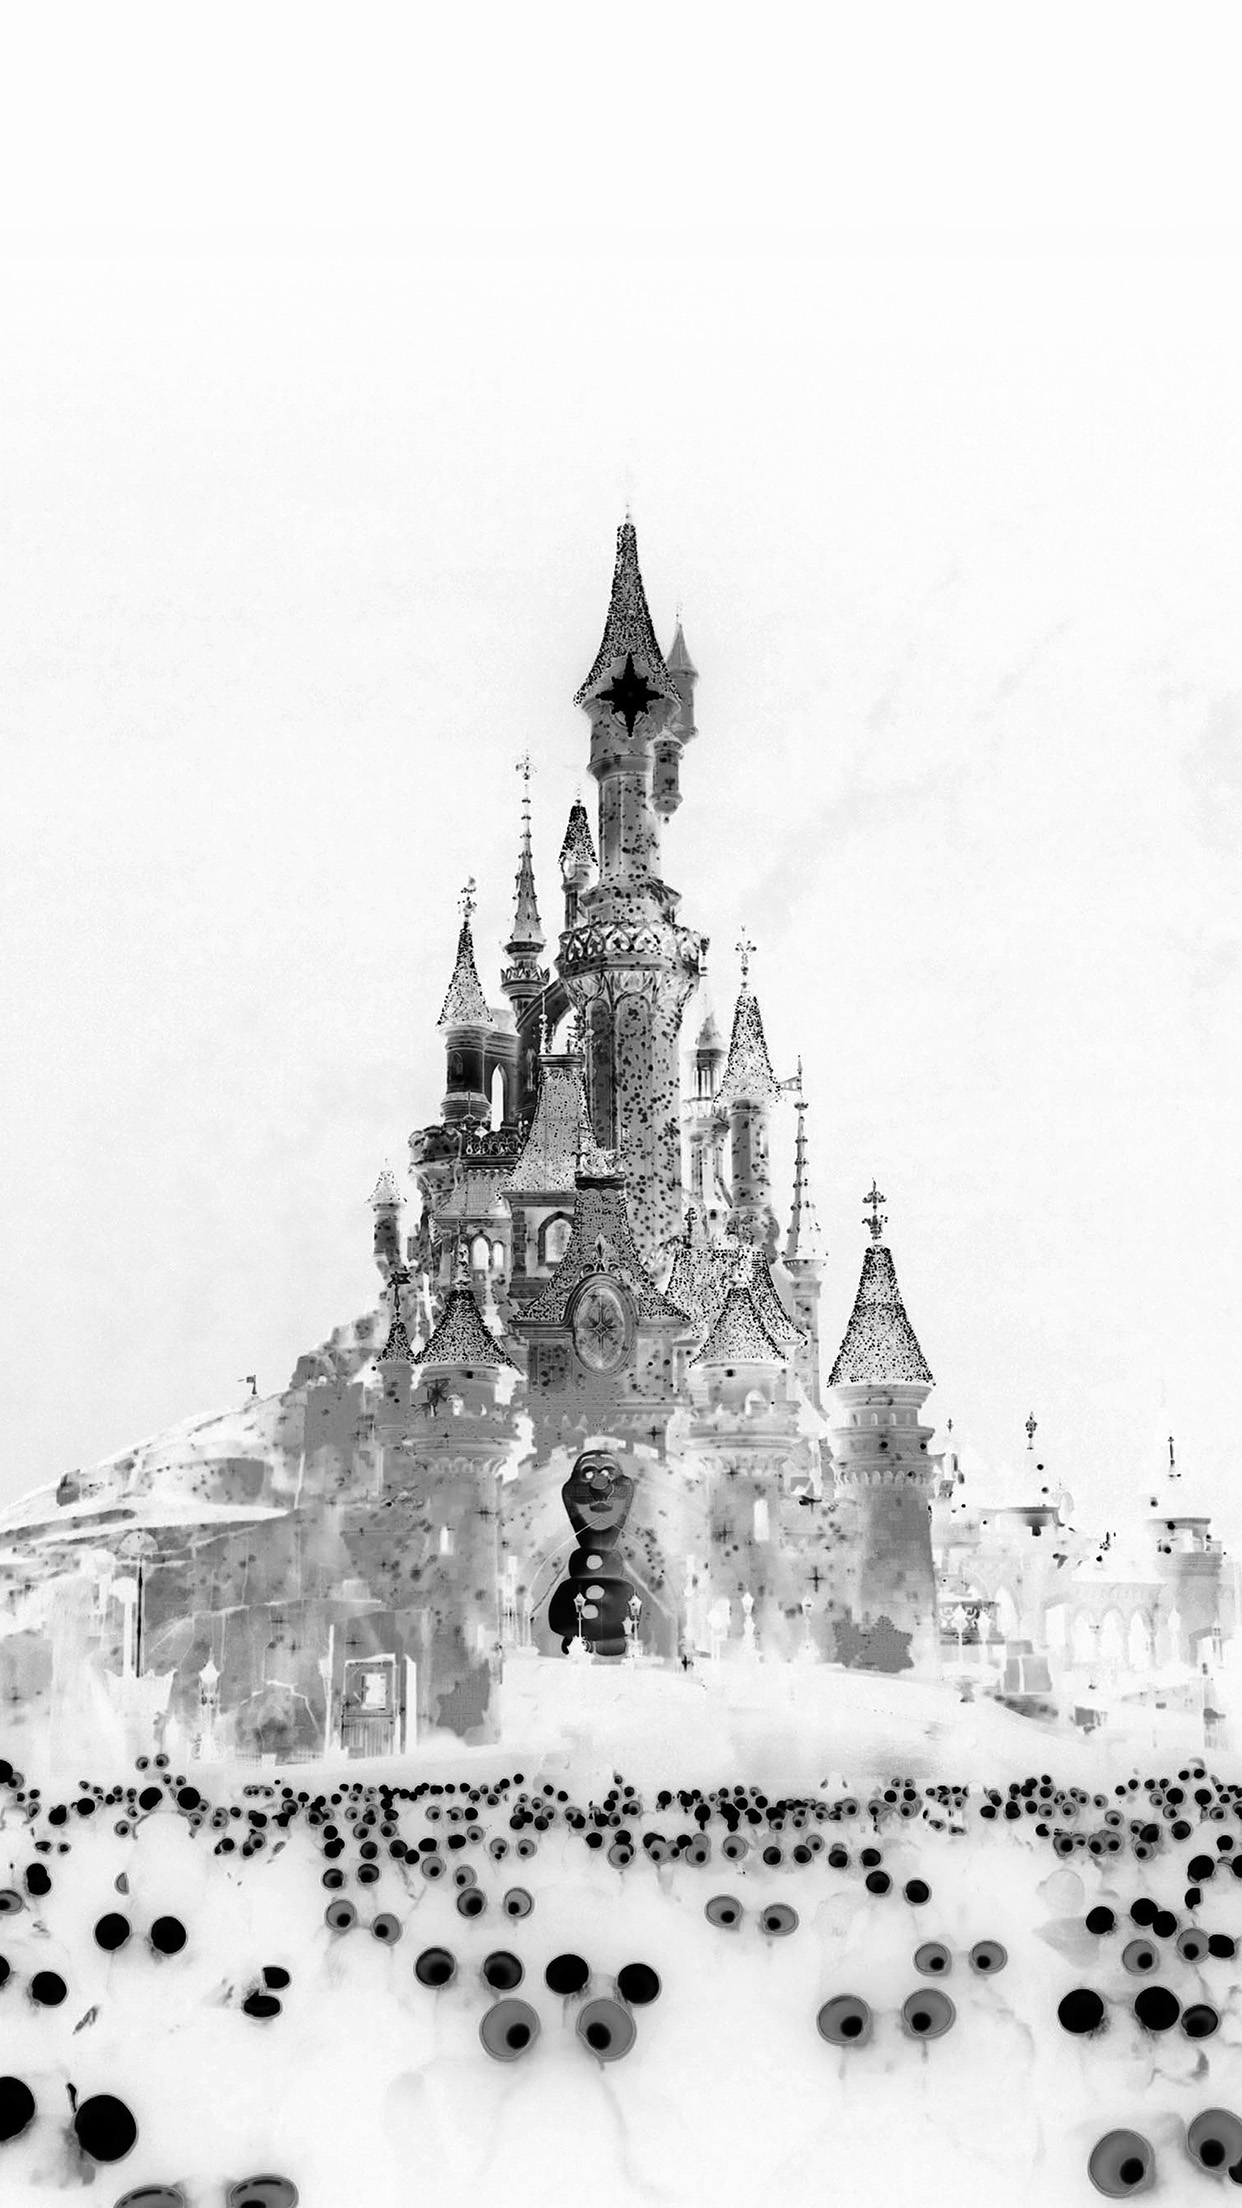 Iphone7paperscom Iphone7 Wallpaper An35 Disney Art Let